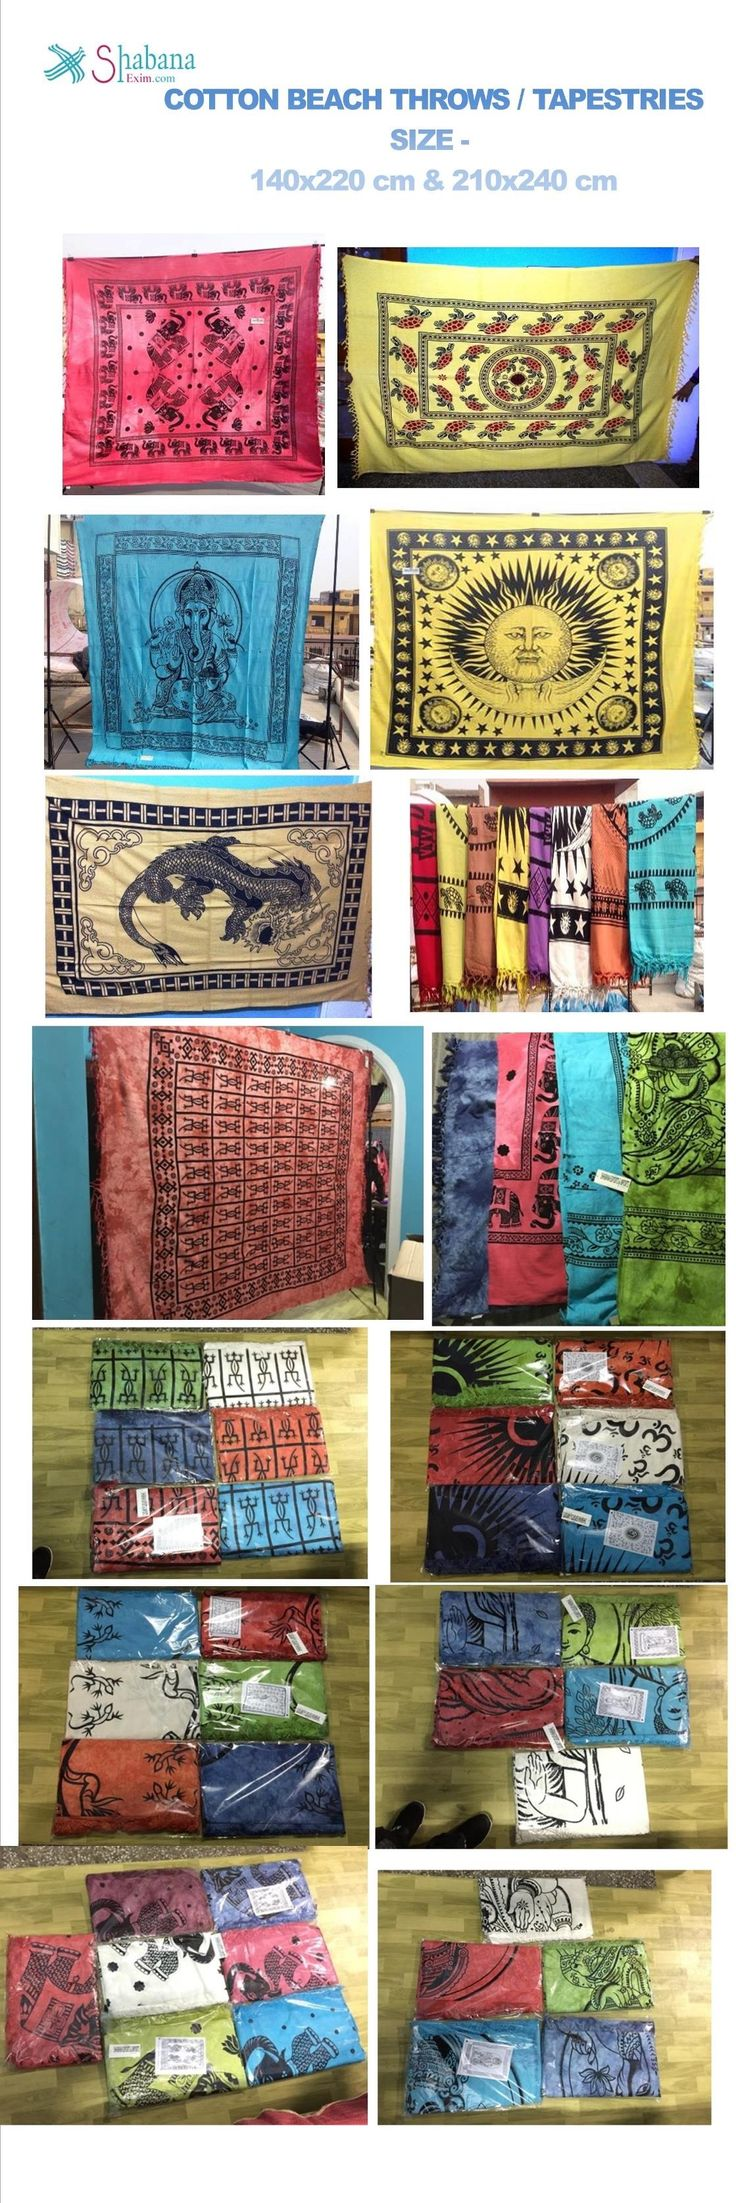 Cotton hand loom printed bed sheets tapestry wall hangings beach throws  Lizard sun moon african coral dragon elephants sea turtles prints